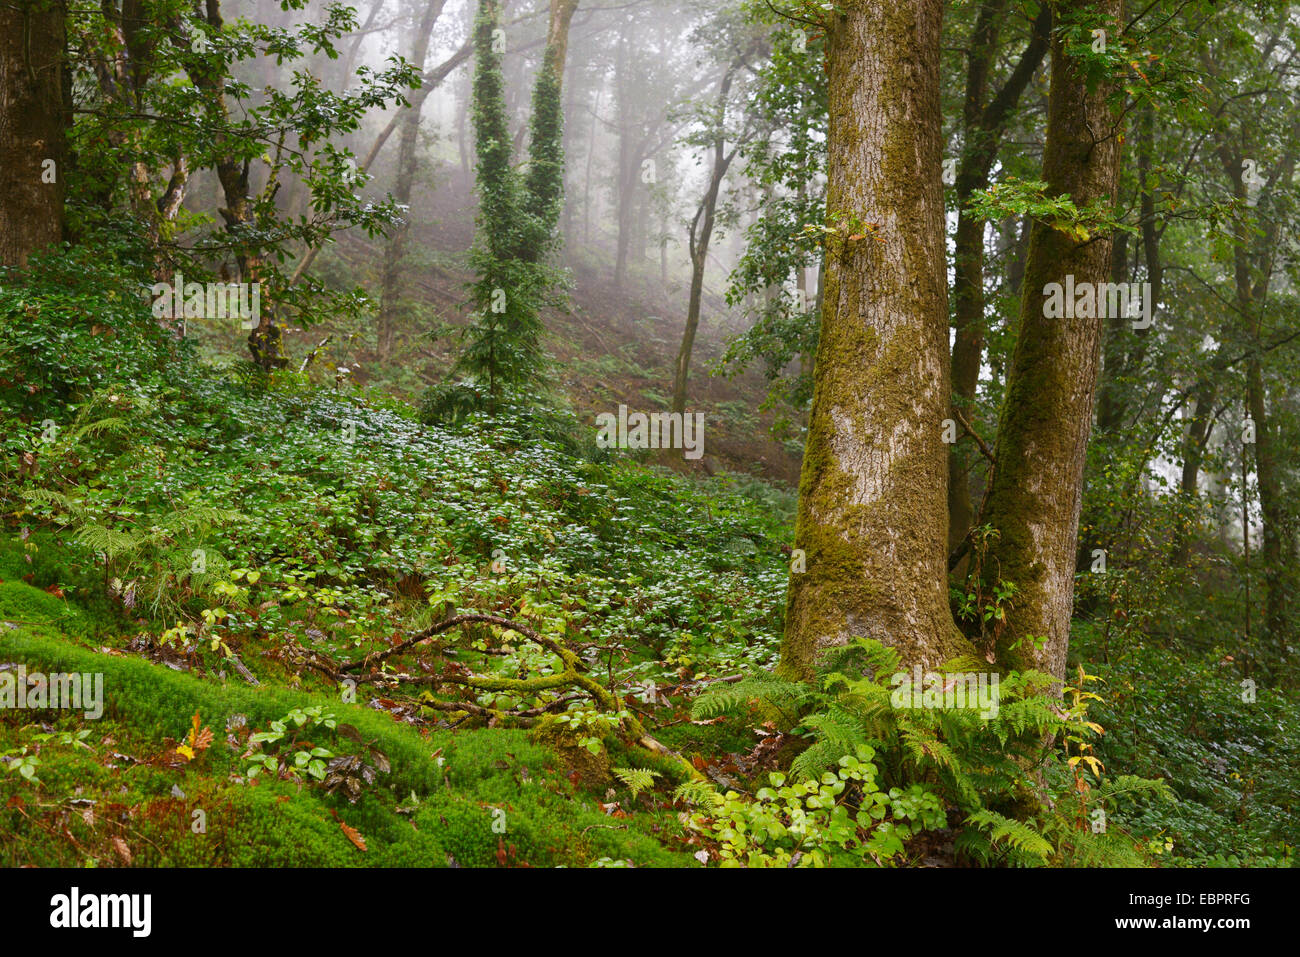 Mature ancient woodland, cleared of conifers with no understorey or shrub layer, Wales, UK. - Stock Image